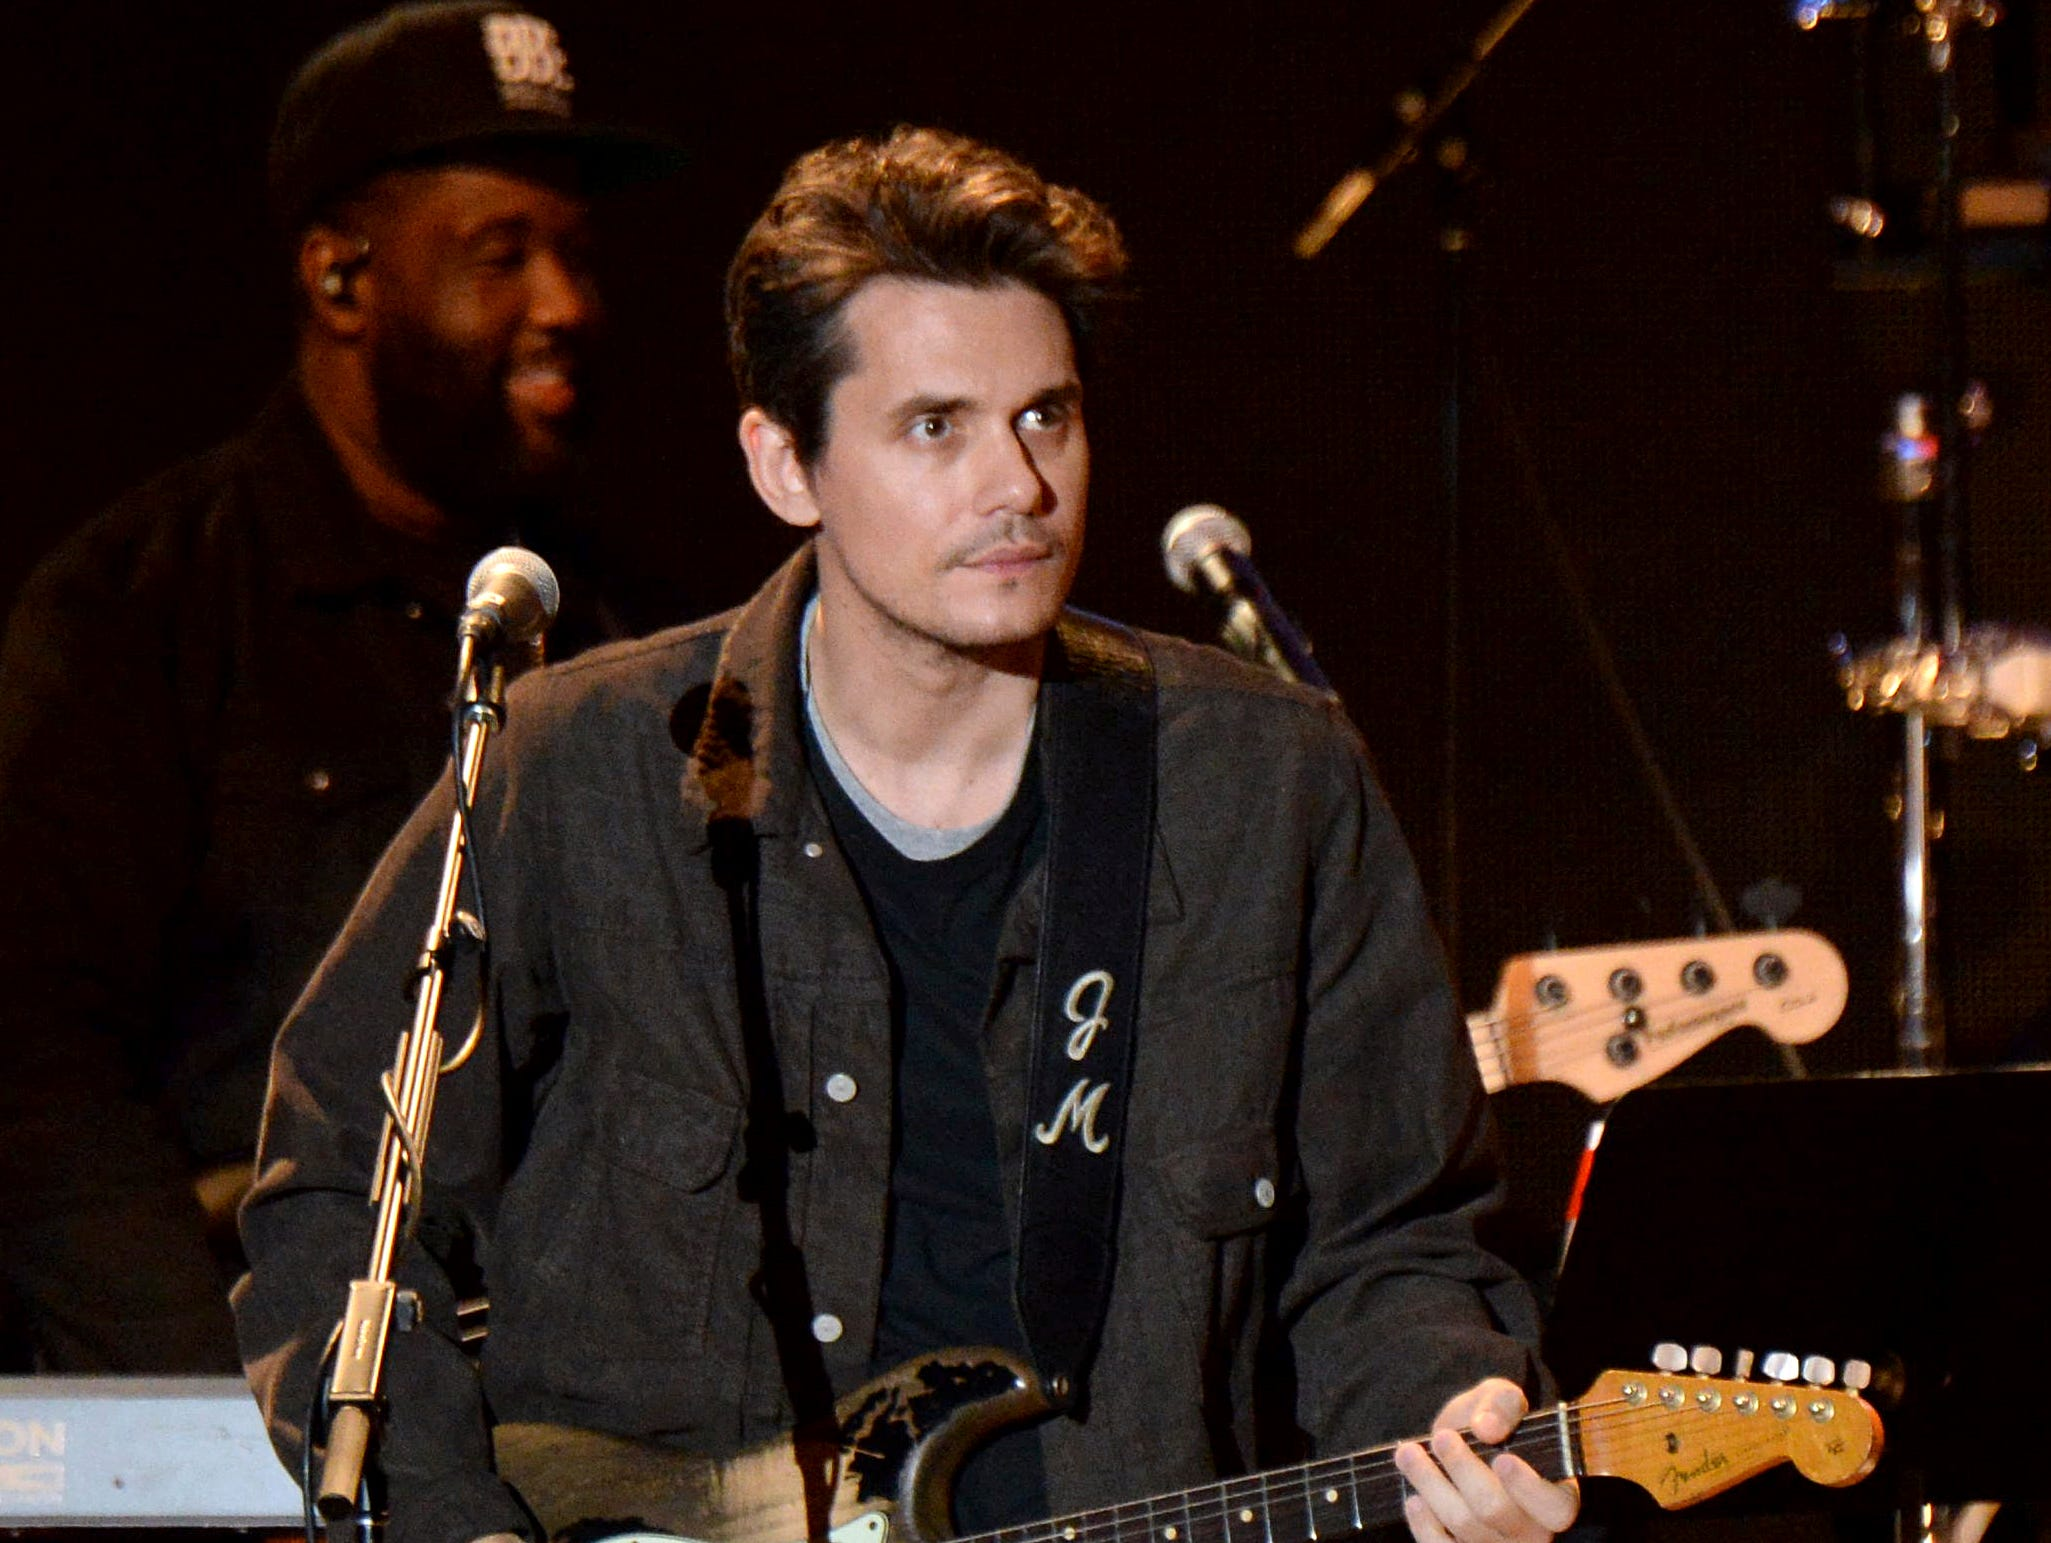 John Mayer performs during the tribute event Mac Miller: A Celebration of Life on Wednesday, Oct. 31, 2018, at the Greek Theatre in Los Angeles. (Photo by Amy Harris/Invision/AP) ORG XMIT: CAPM106